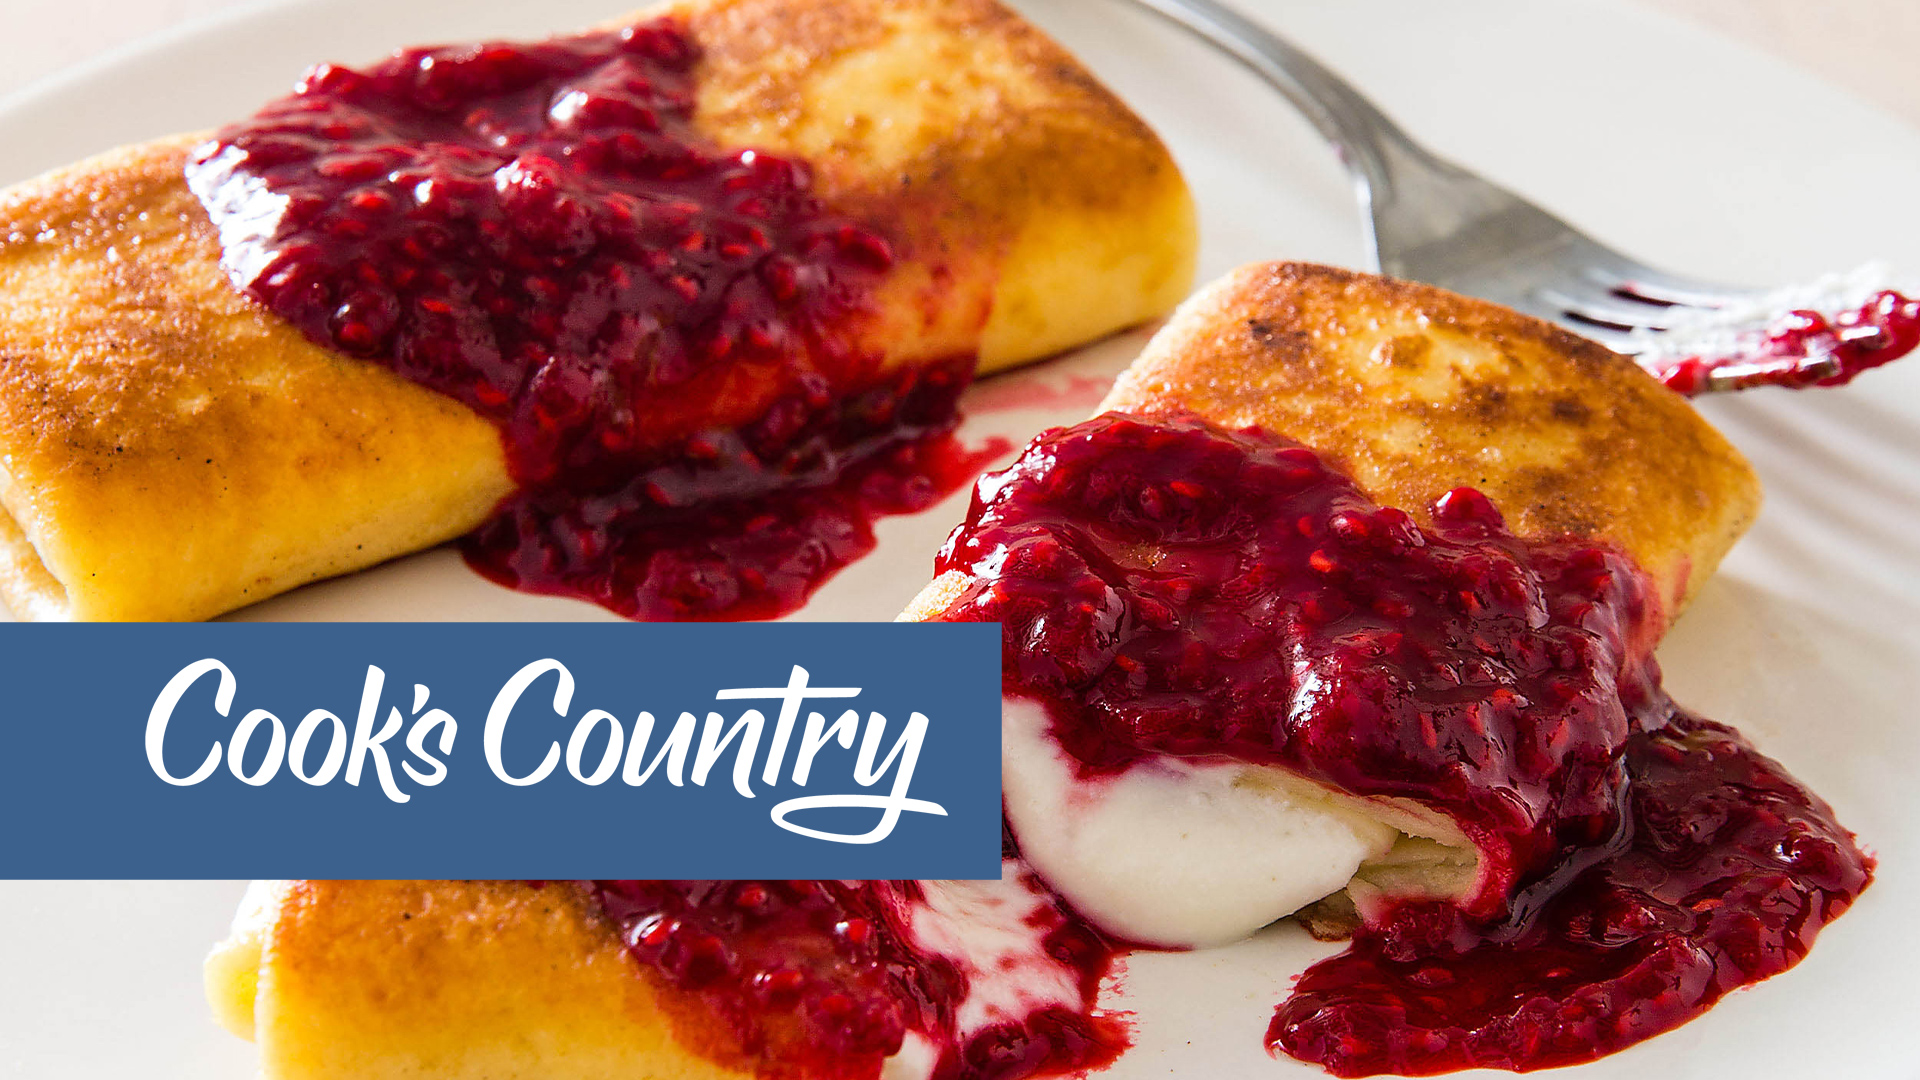 Cook's Country Season 11